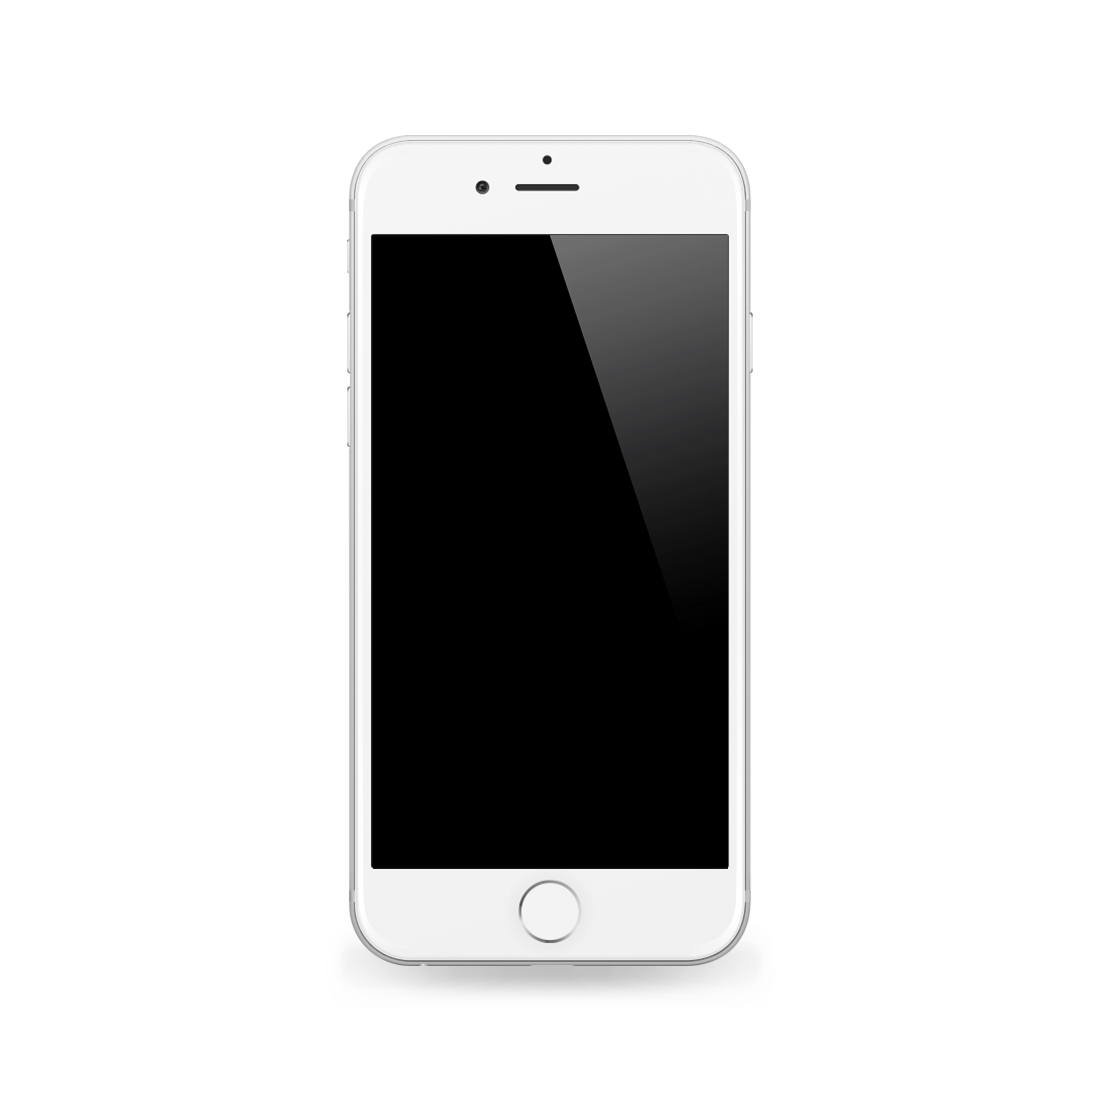 iphone 7 png transparent 10 free Cliparts | Download ...